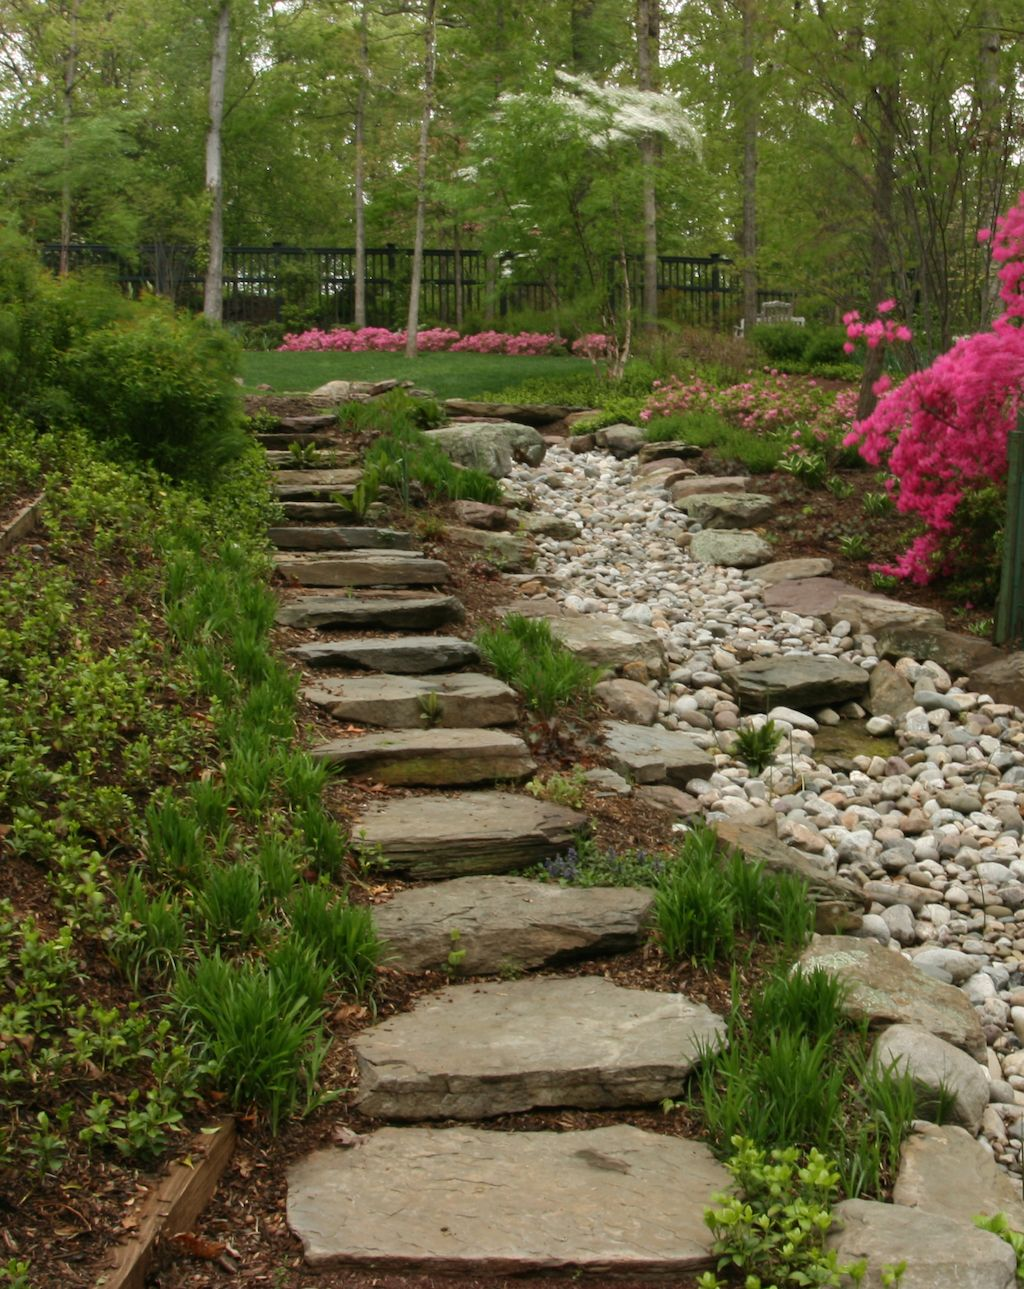 The natural stone steps of a stairway garden feature climb a small - Dry Creek Bed Effect On Slope With Stairs Via Merrifield Garden Center